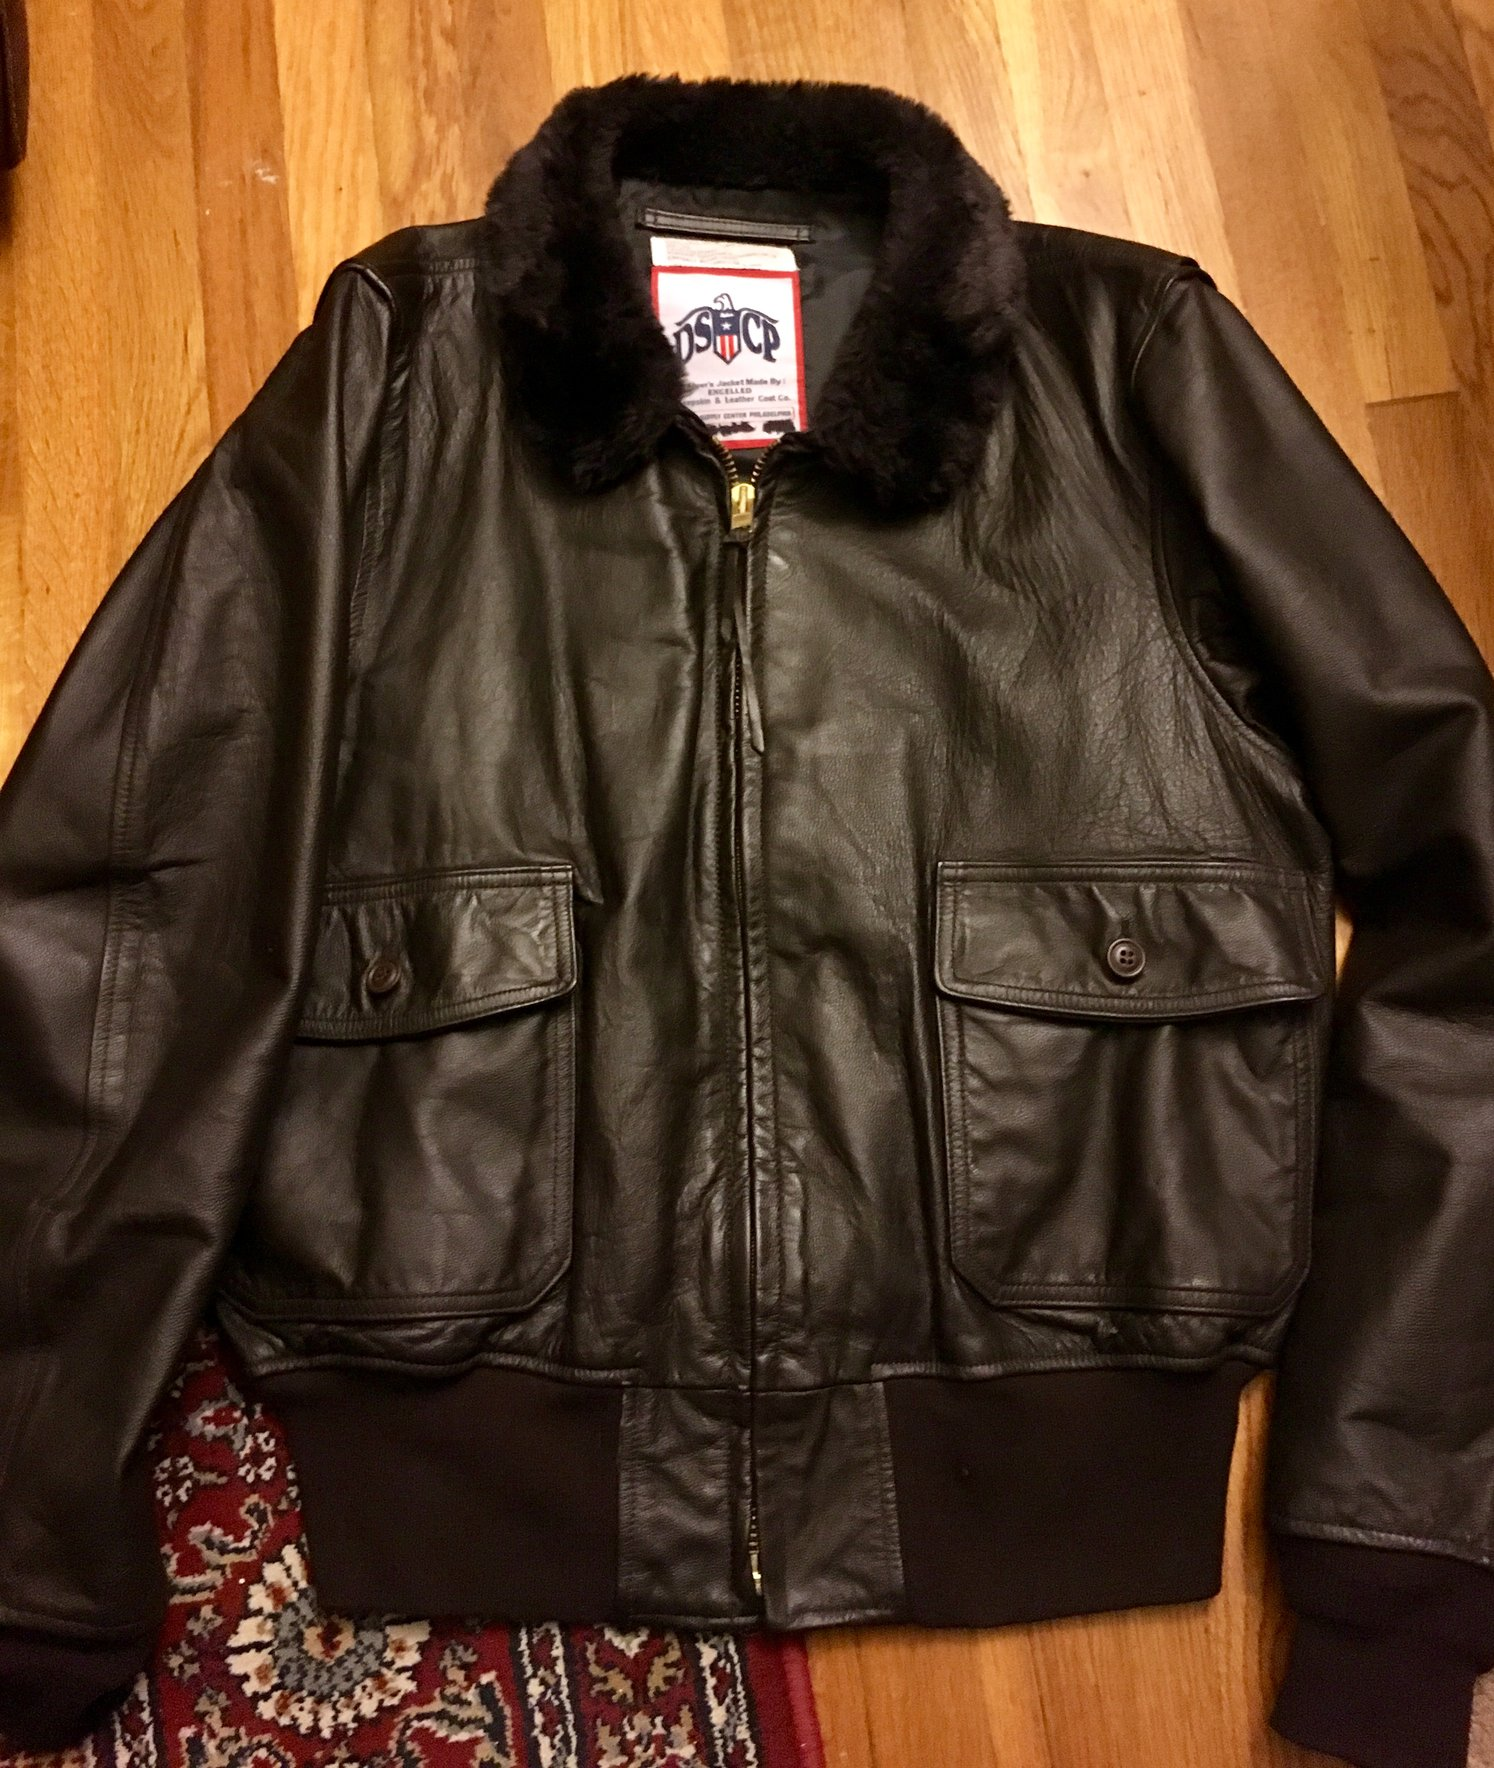 Excelled Sheepskin and Leather Company G-1 Jackets | Page 2 | The ...